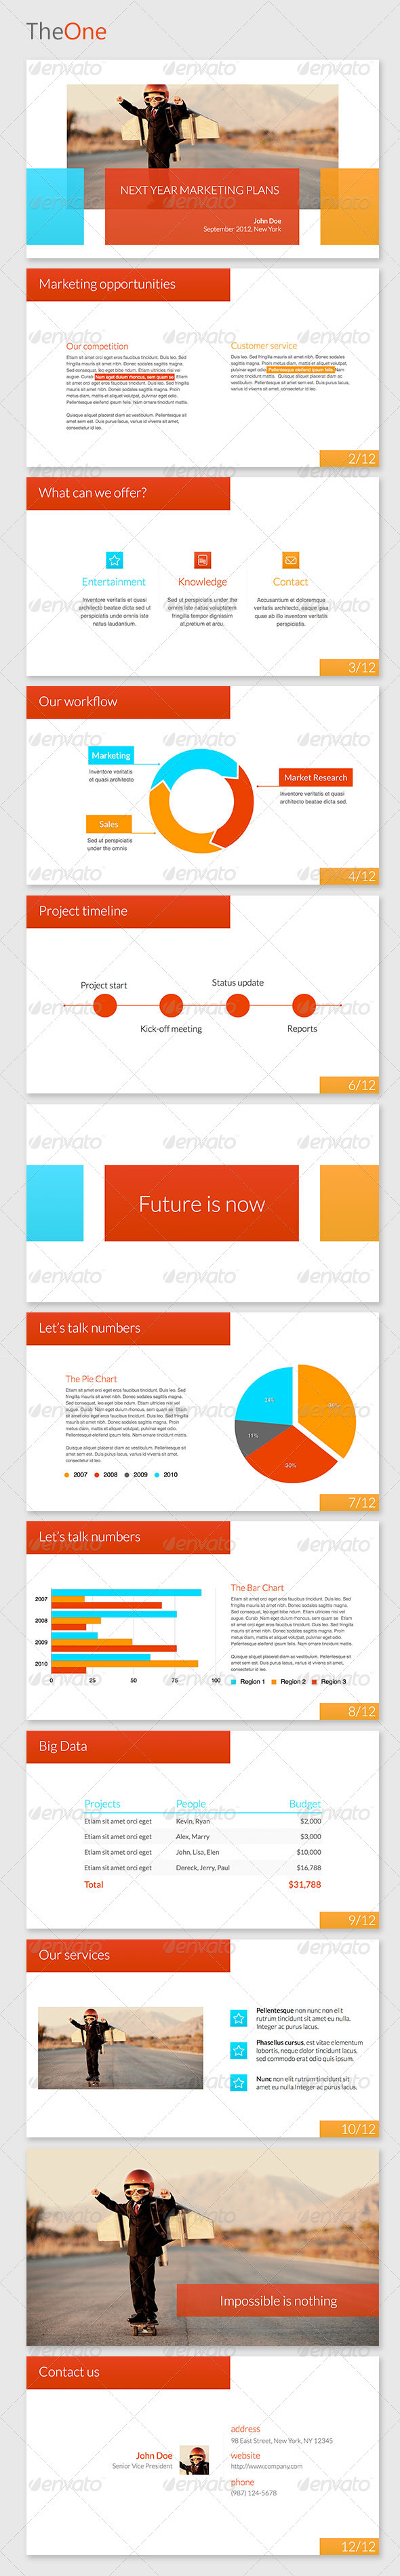 GraphicRiver TheOne Keynote Template 3168327